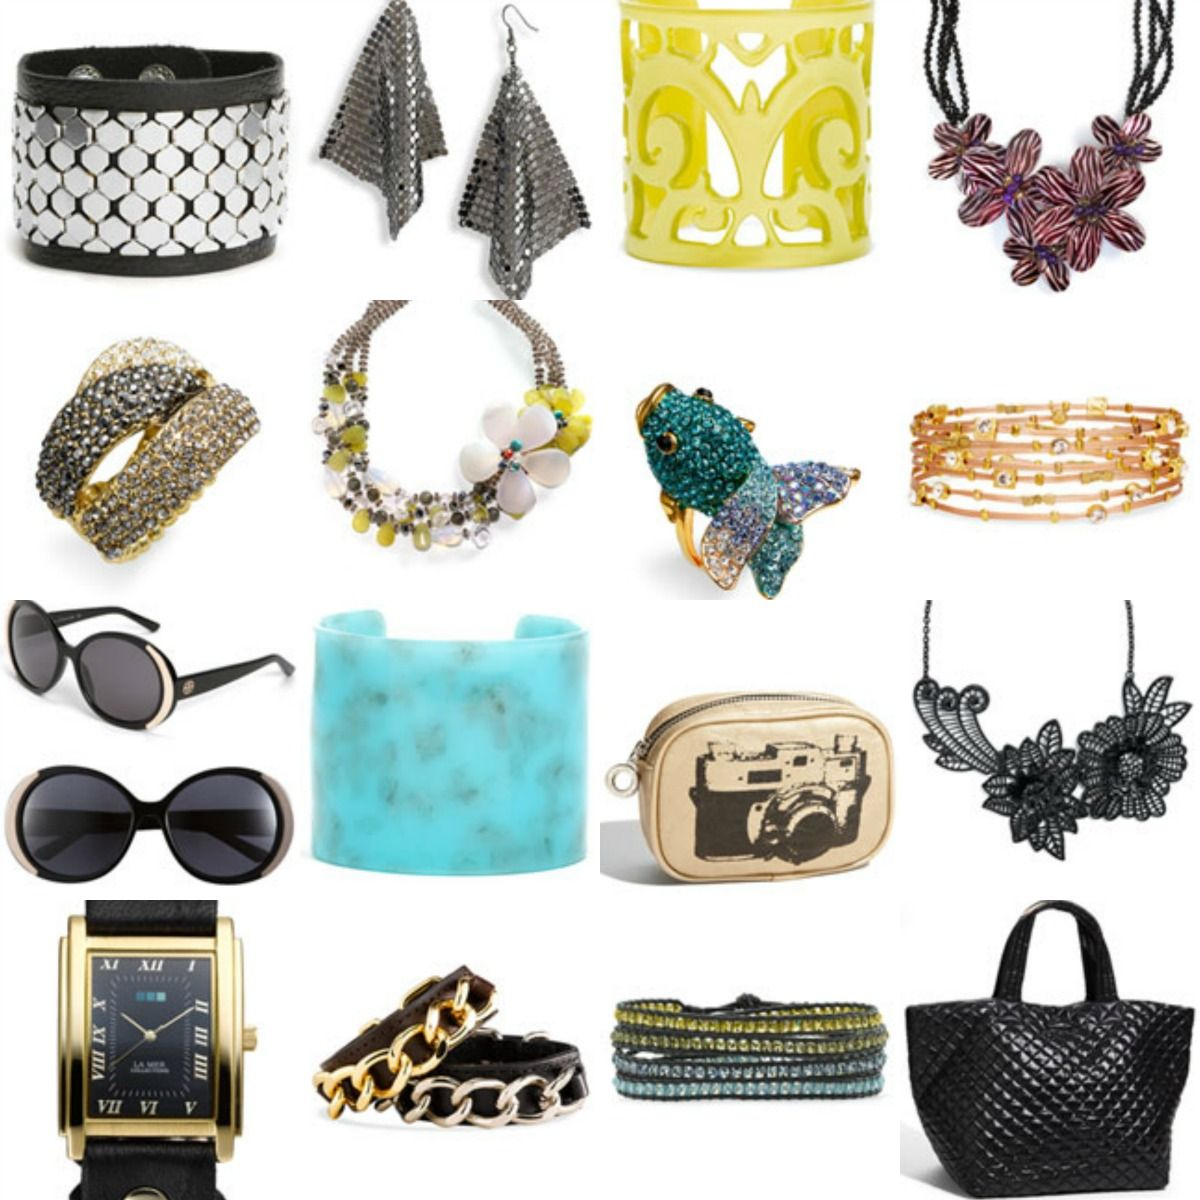 Accessory wish list When you have found the accessories you want, you can add them to your wish list. Choose a quantity and click add. Note that this is not an order.